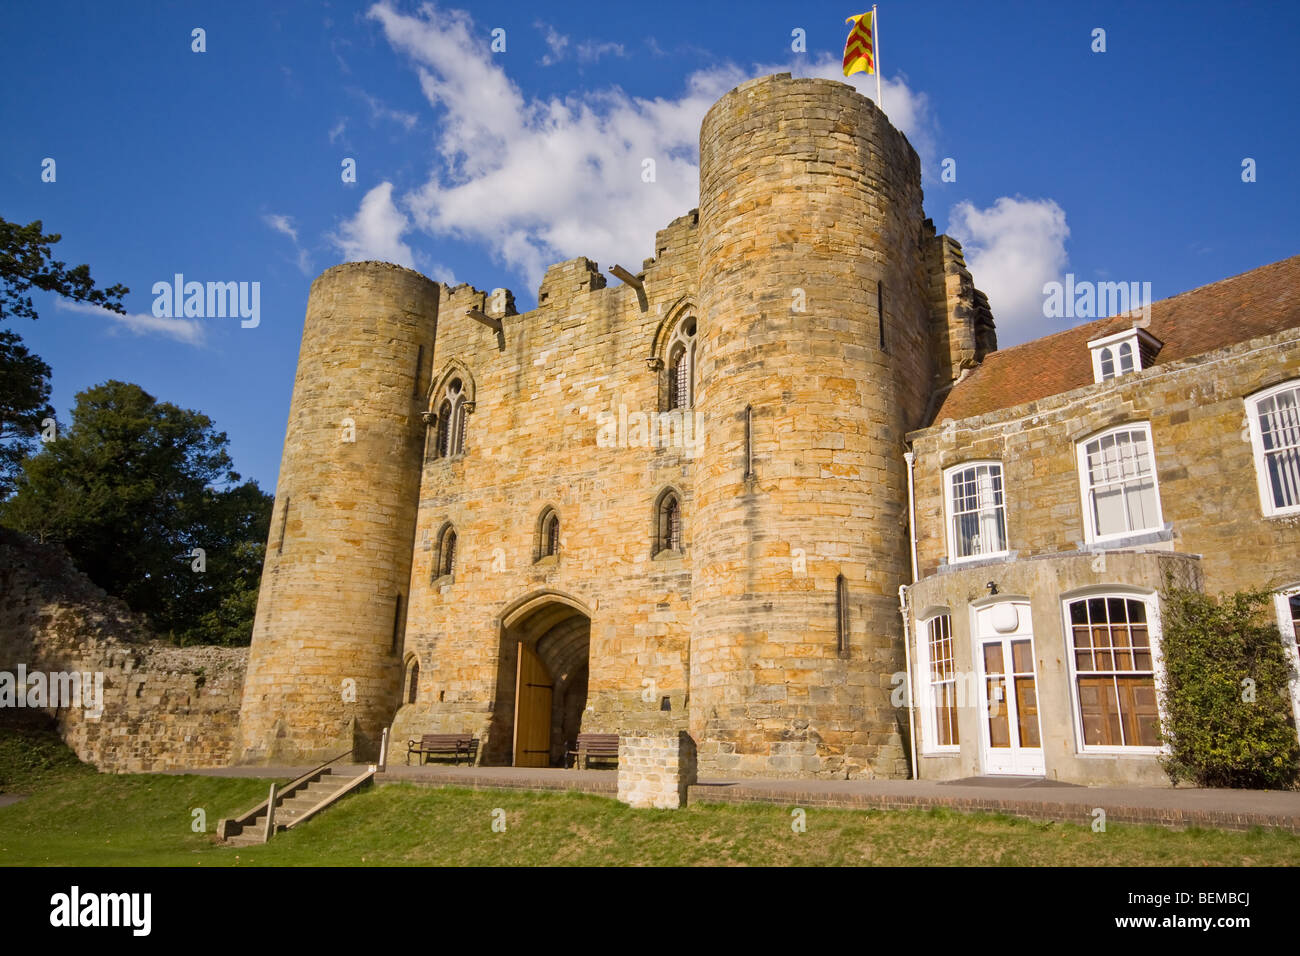 The Gatehouse at Tonbridge Castle Kent - Stock Image